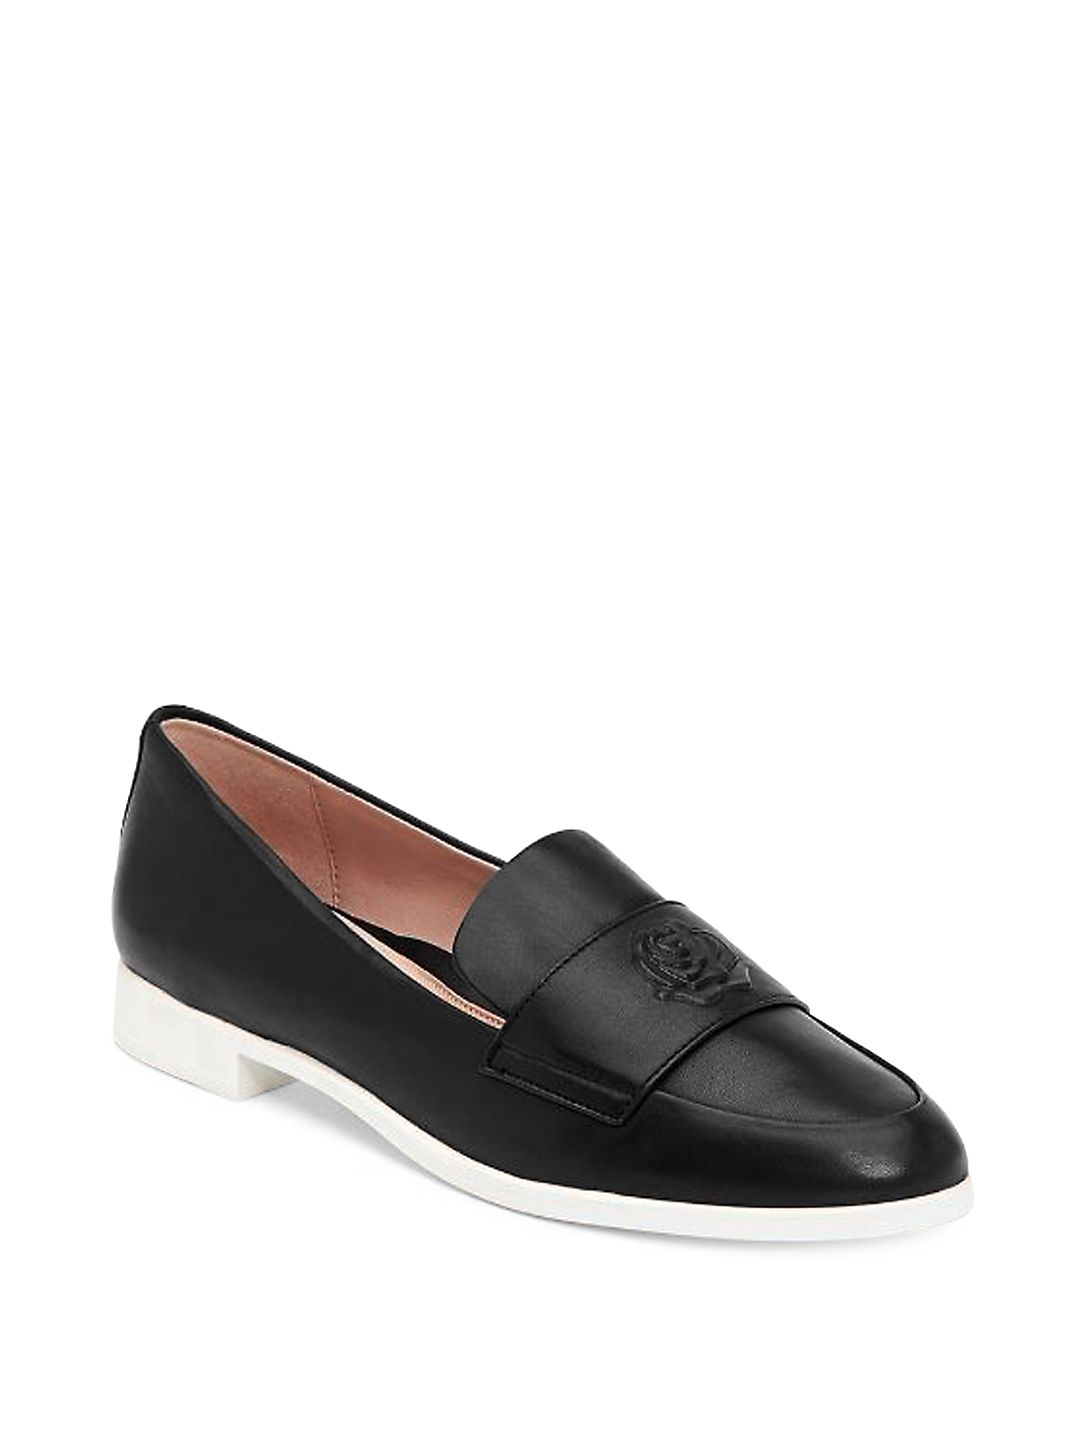 Blossom Rose-Embossed Leather Loafers